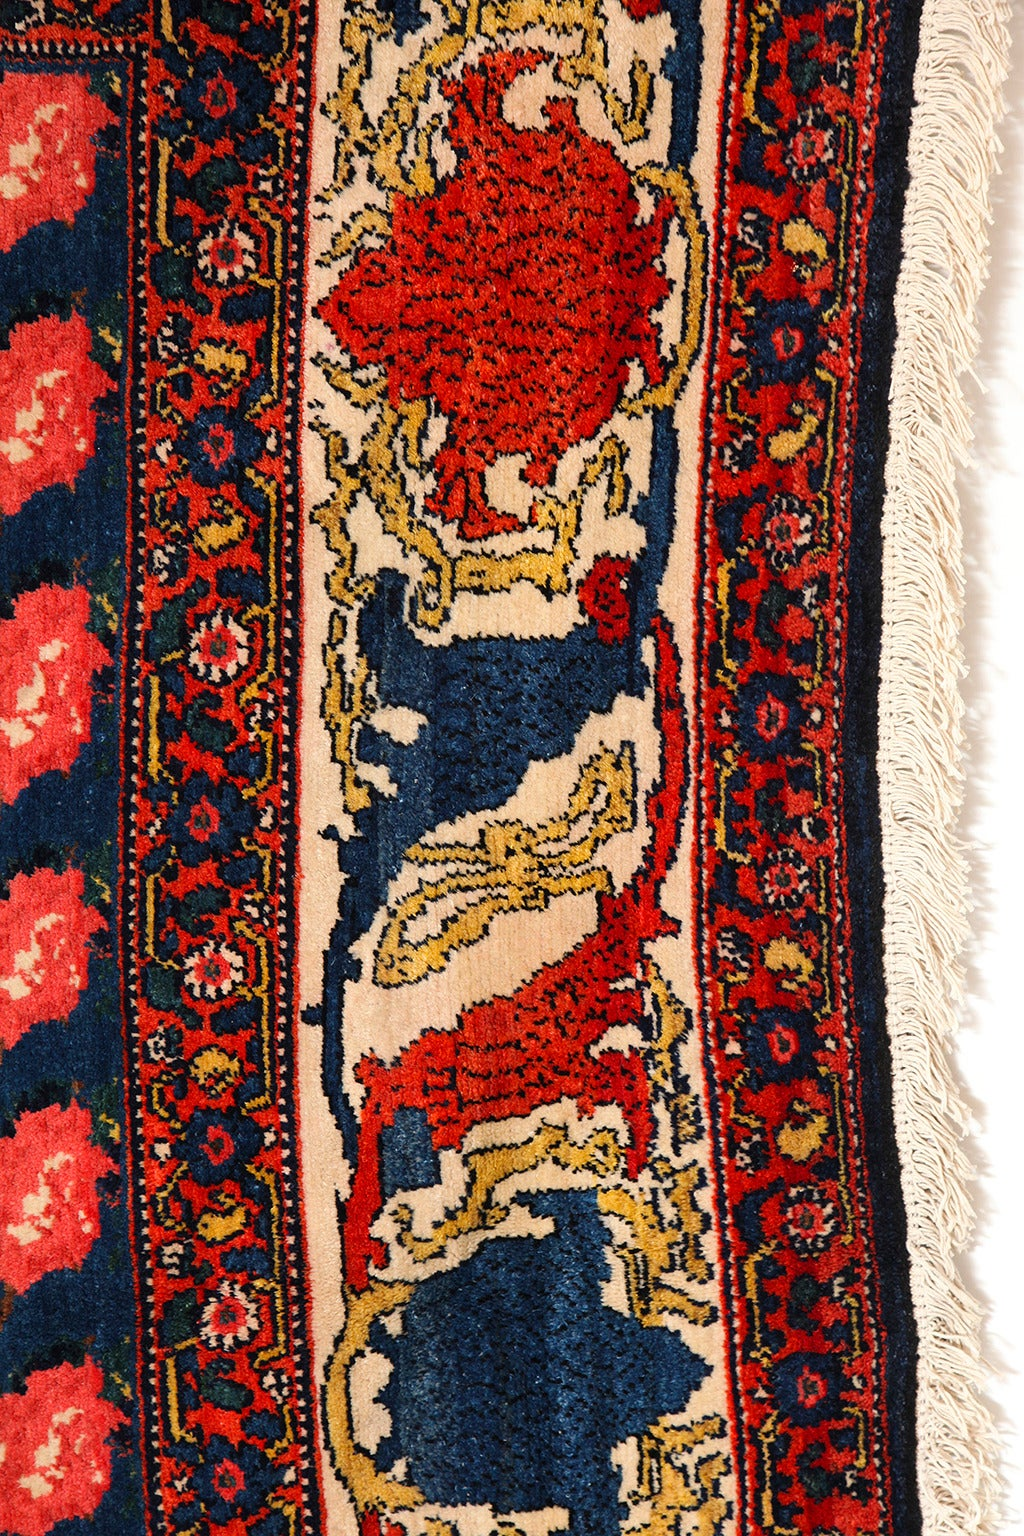 Persian Senneh Carpet circa 1900 with Pure Wool Pile and Natural Vegetable Dyes For Sale 2